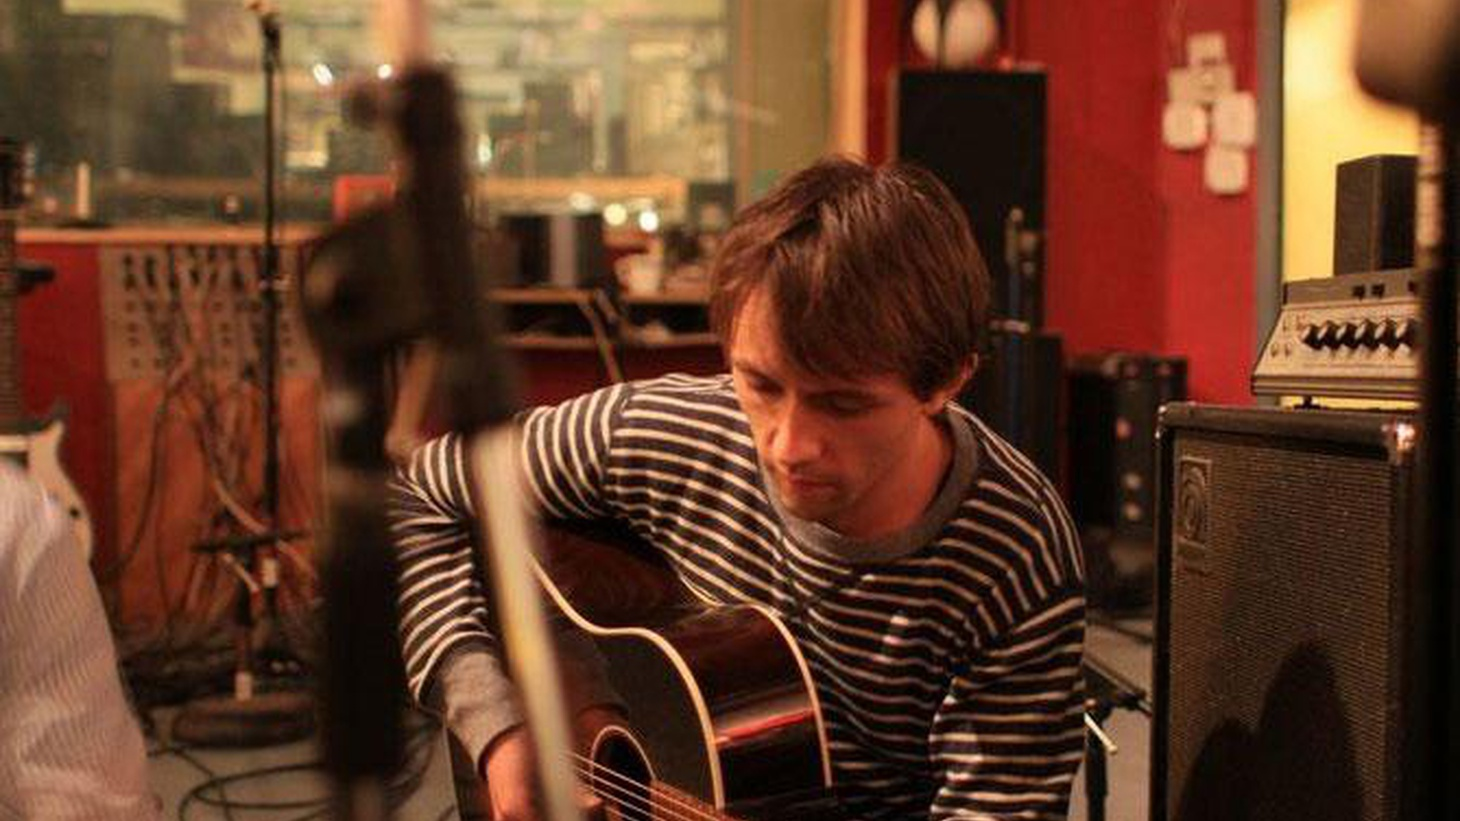 Norwegian wunderkind Sondre Lerche performs his breezy pop songs for Morning Becomes Eclectic at 11:15am.